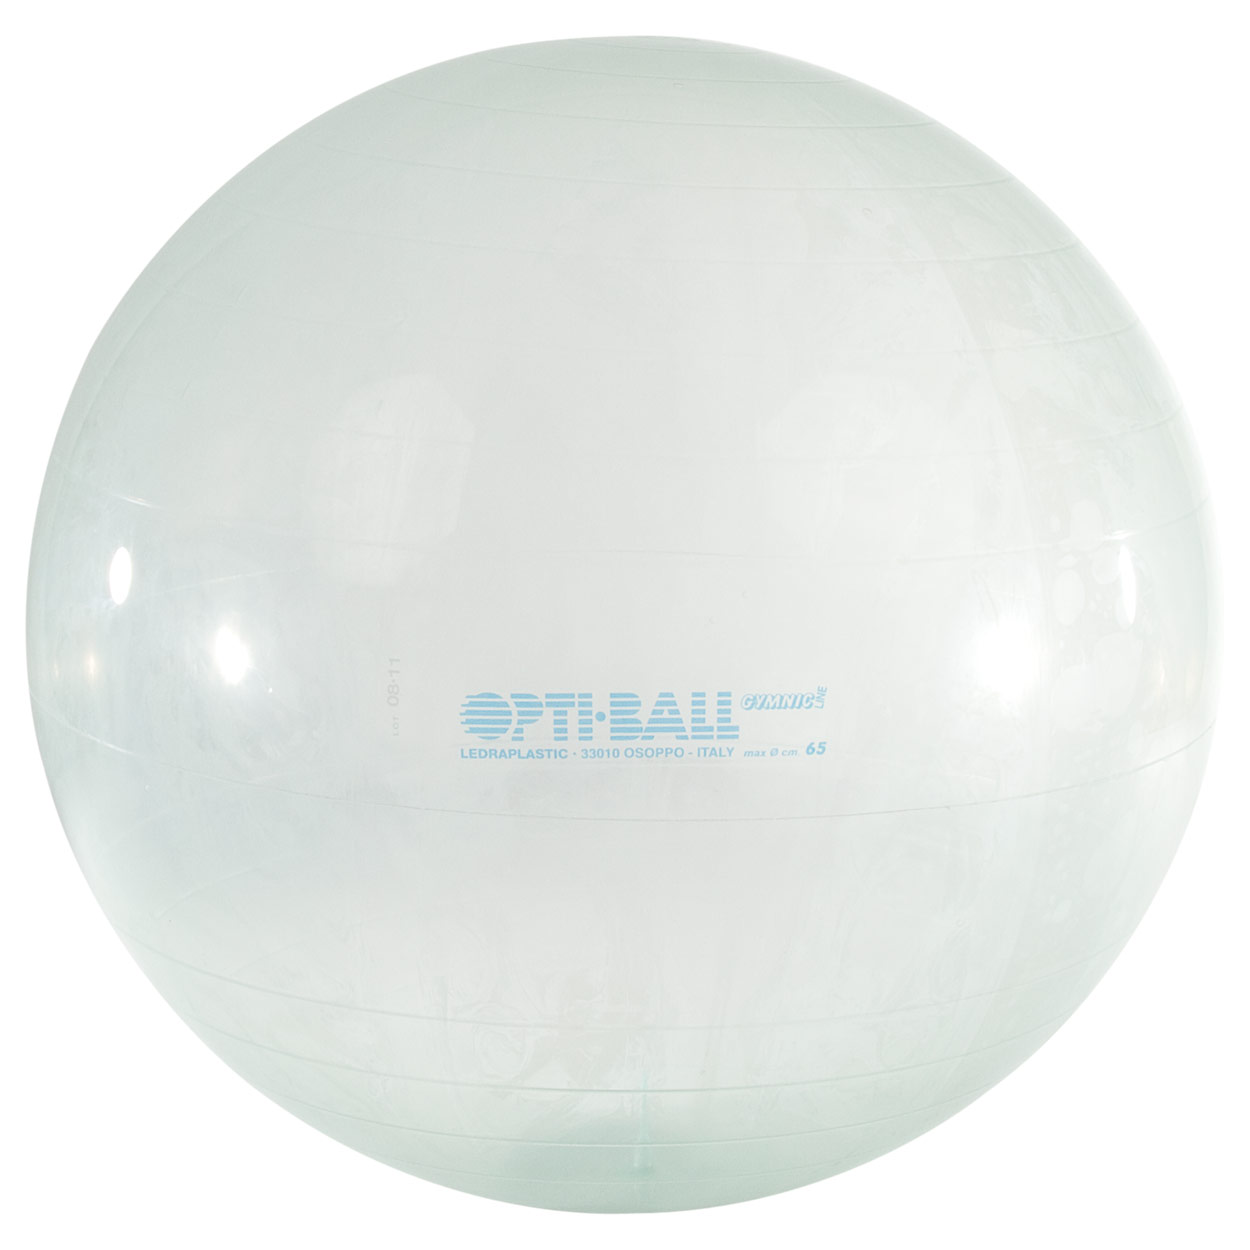 Gymnastik & Fitness: Opti-Ball Gymnastikball transparent, ø 65 cm